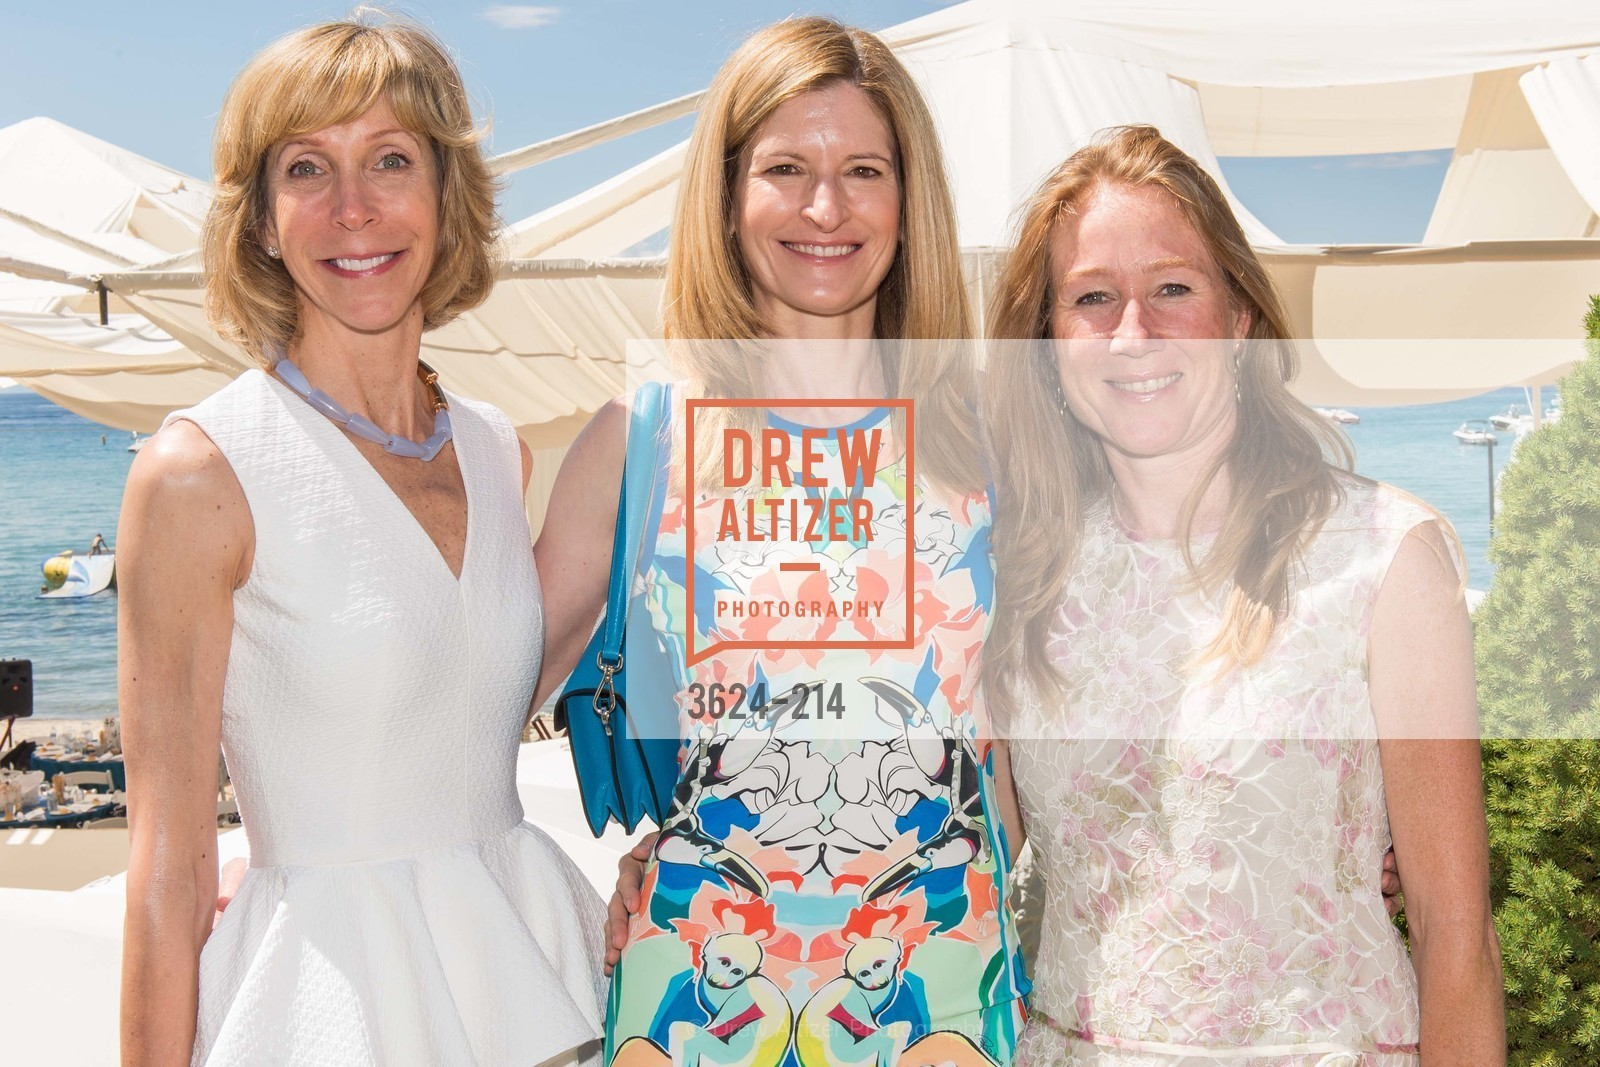 Nancy Kukacka, April Isaacson, Heather Preston, Saks Fifth Avenue and The League to Save Lake Tahoe Present Fashion on the Lake, Private Residence, August 1st, 2015,Drew Altizer, Drew Altizer Photography, full-service agency, private events, San Francisco photographer, photographer california